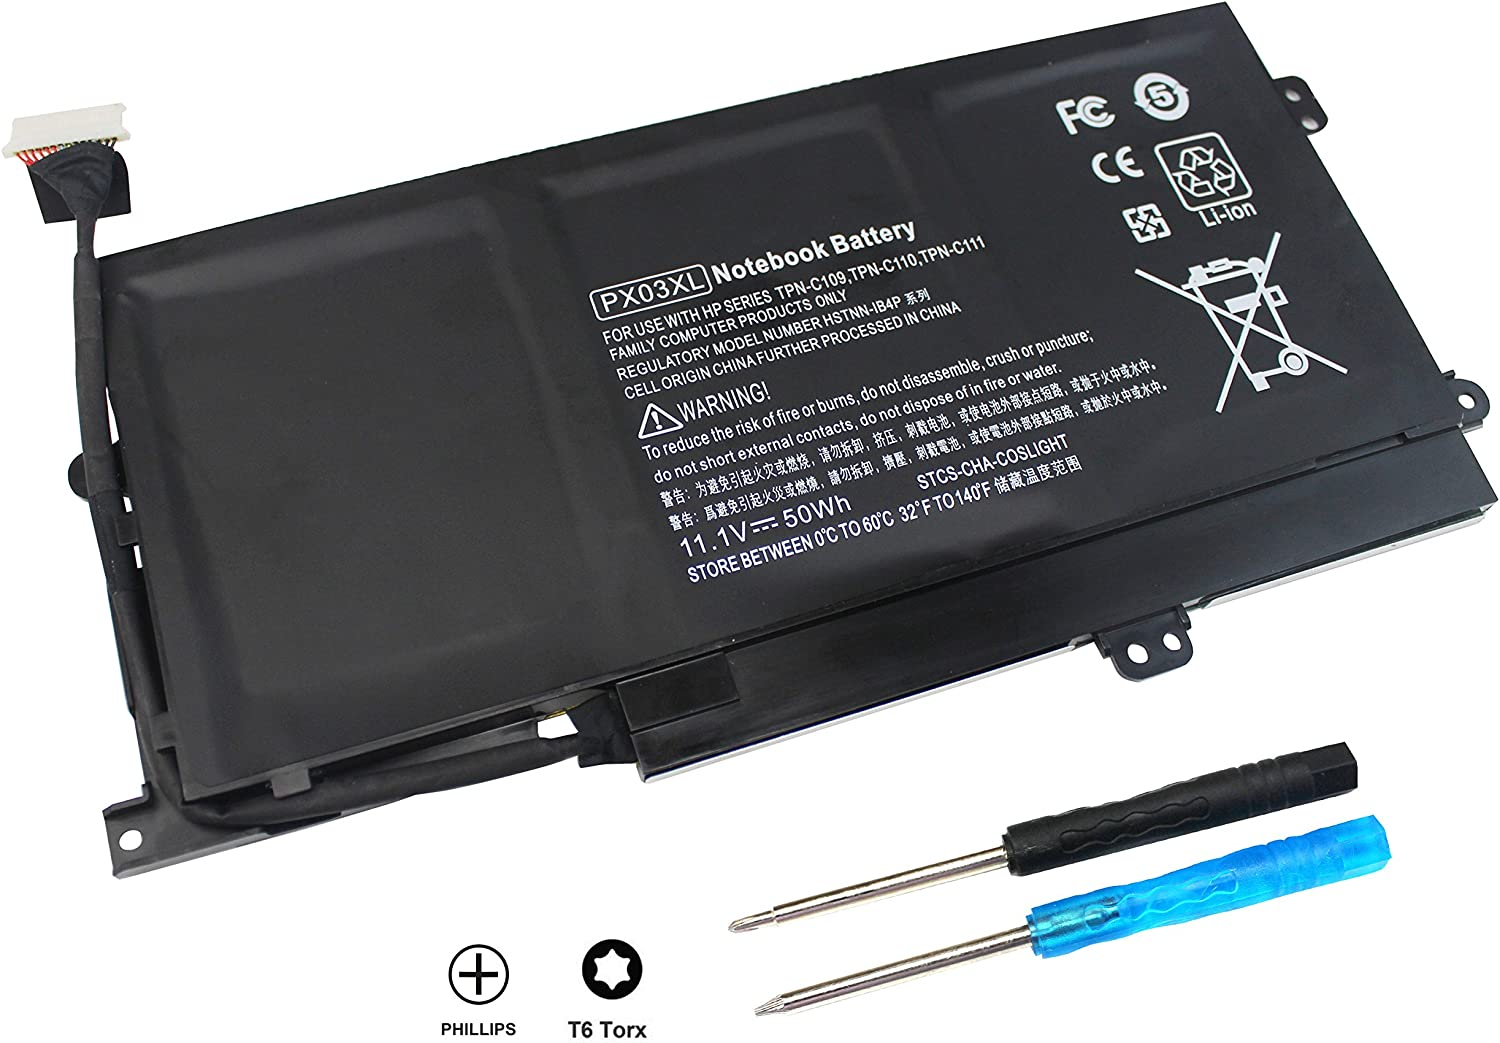 PX03XL Laptop Battery Compatible with HP Envy 14 Touchsmart M6-K K002TX K022DX M6-k125dx M6-k025dx M6-k015dx M6-k012dx M6- k010dx M6-K122dx M6-K054CA 715050-001 Tpn-c109 Tpn-c110 Tpn-c111 HSTNN-LB4P